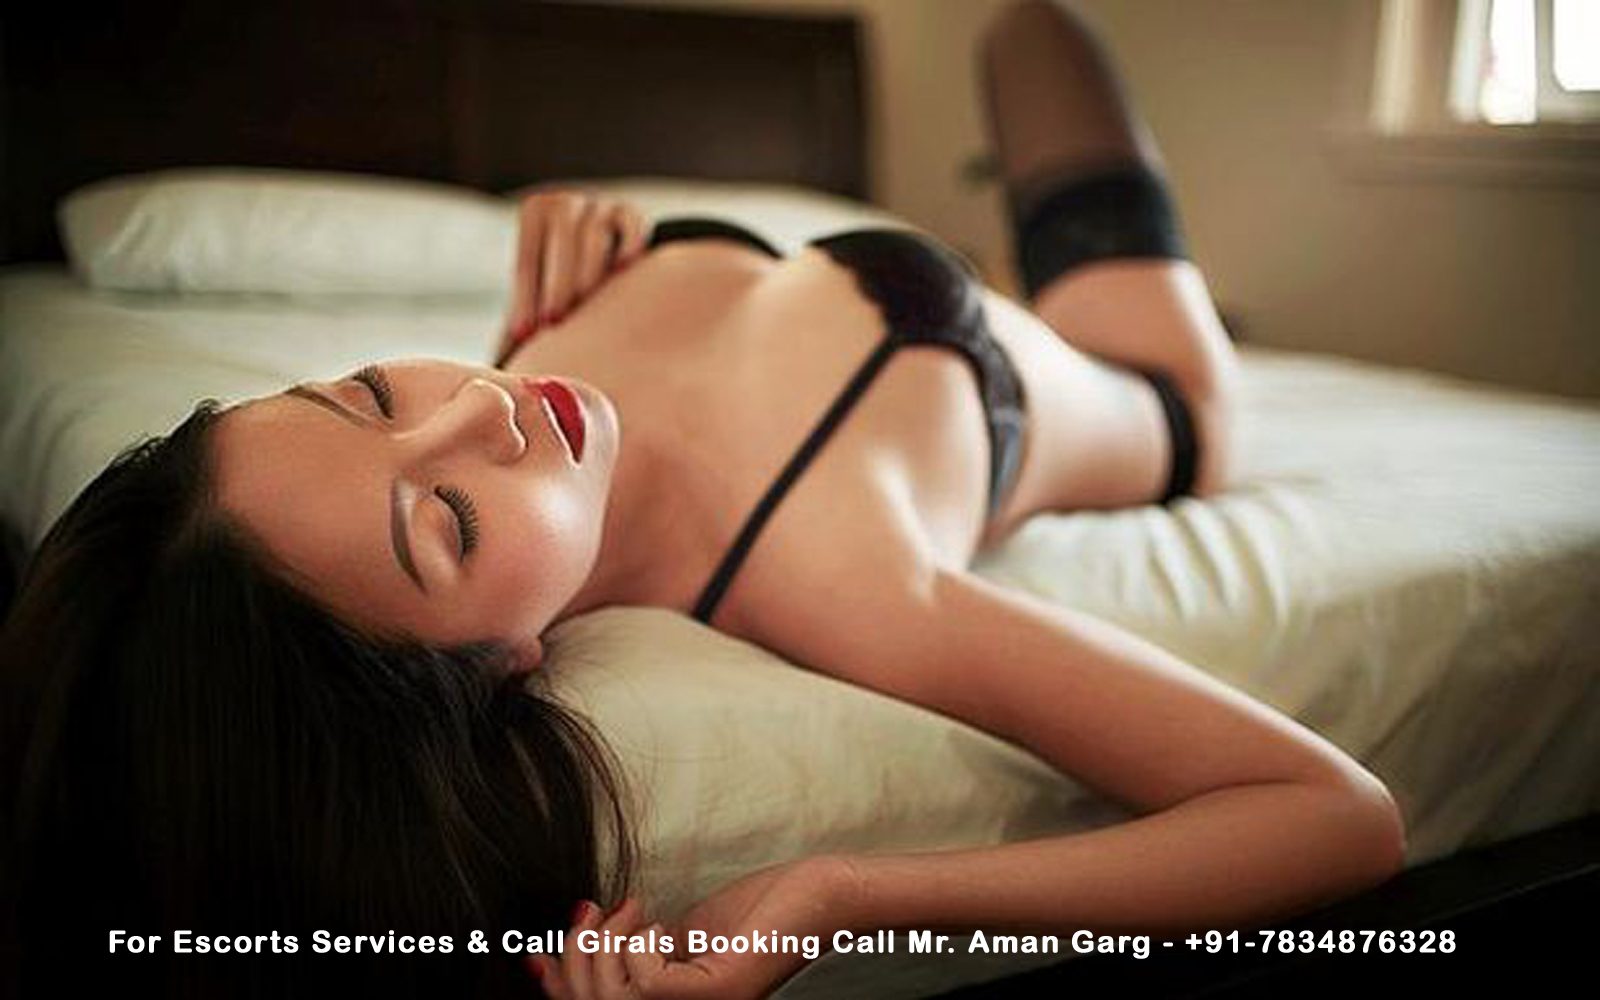 real escort xxx mature russian escorts